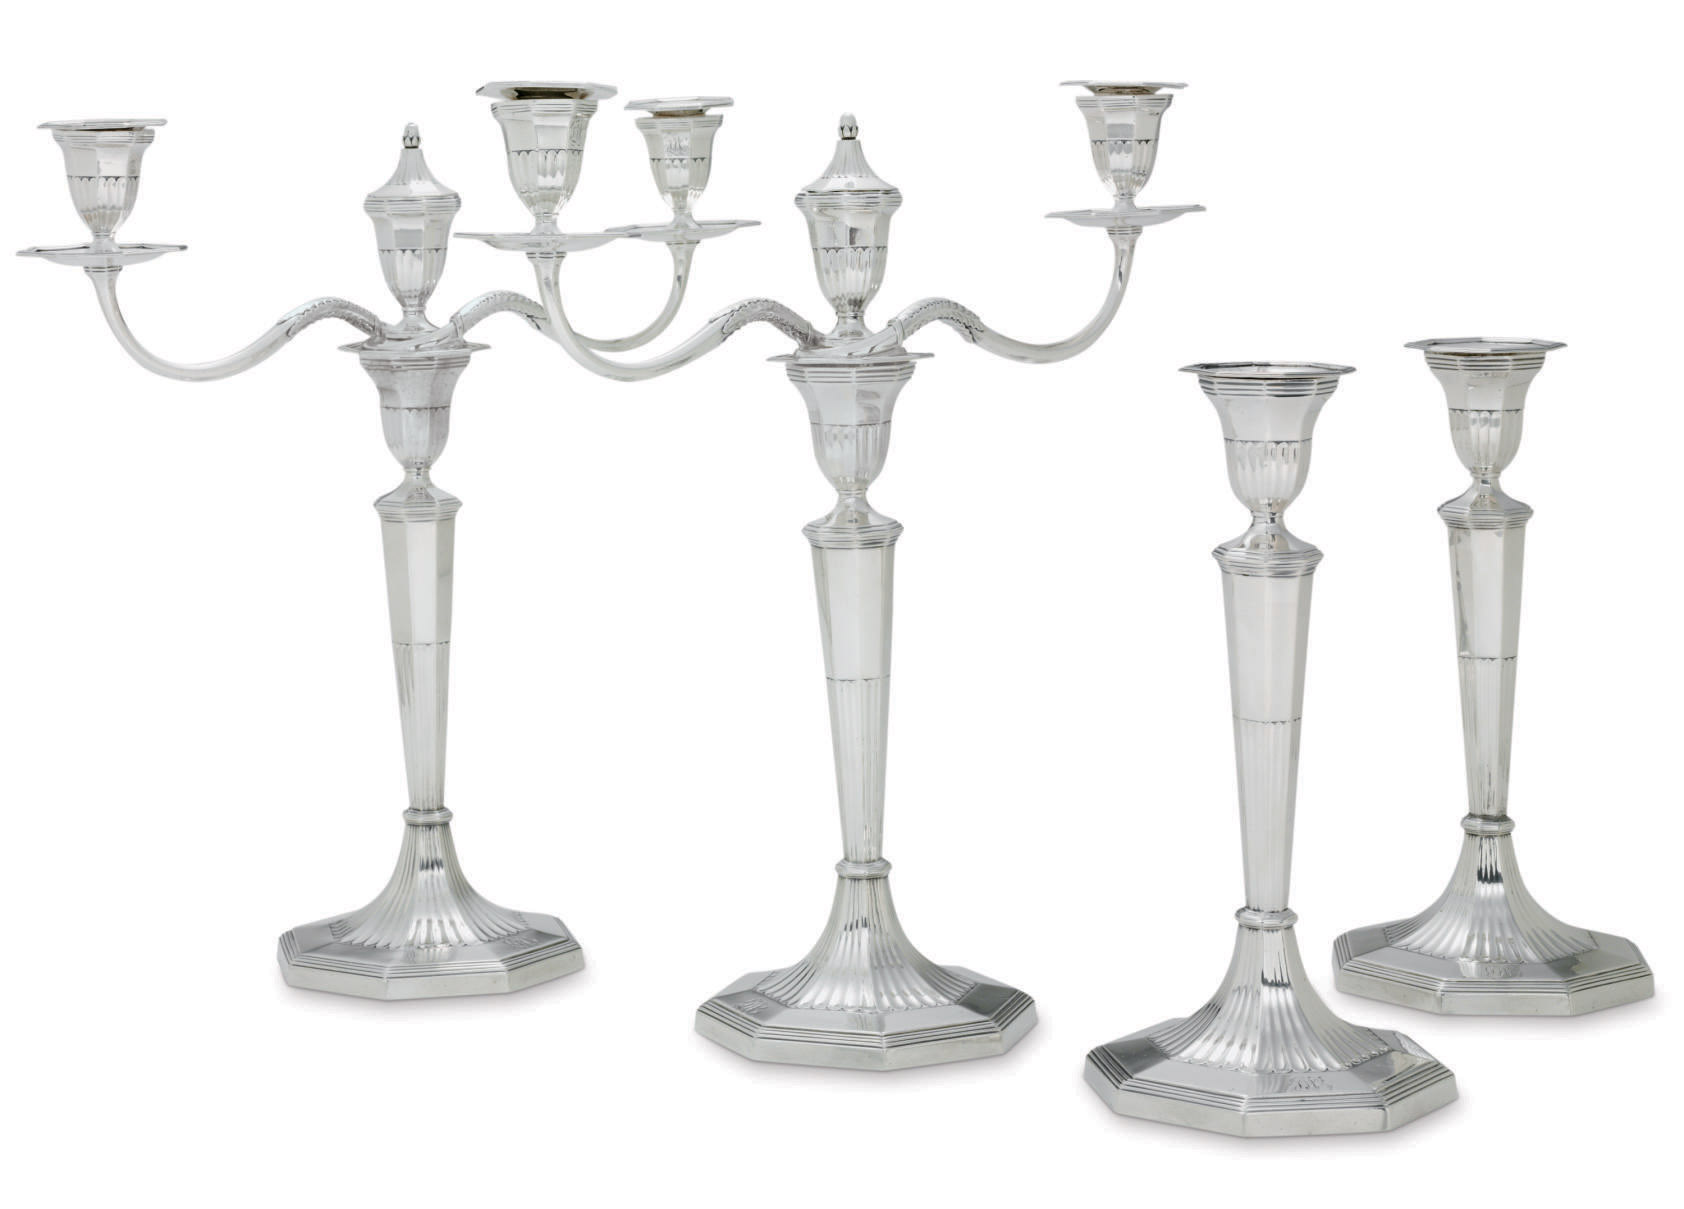 A PAIR OF GEORGE III SILVER THREE-LIGHT CANDELABRA WITH TWO MATCHING CANDLESTICKS